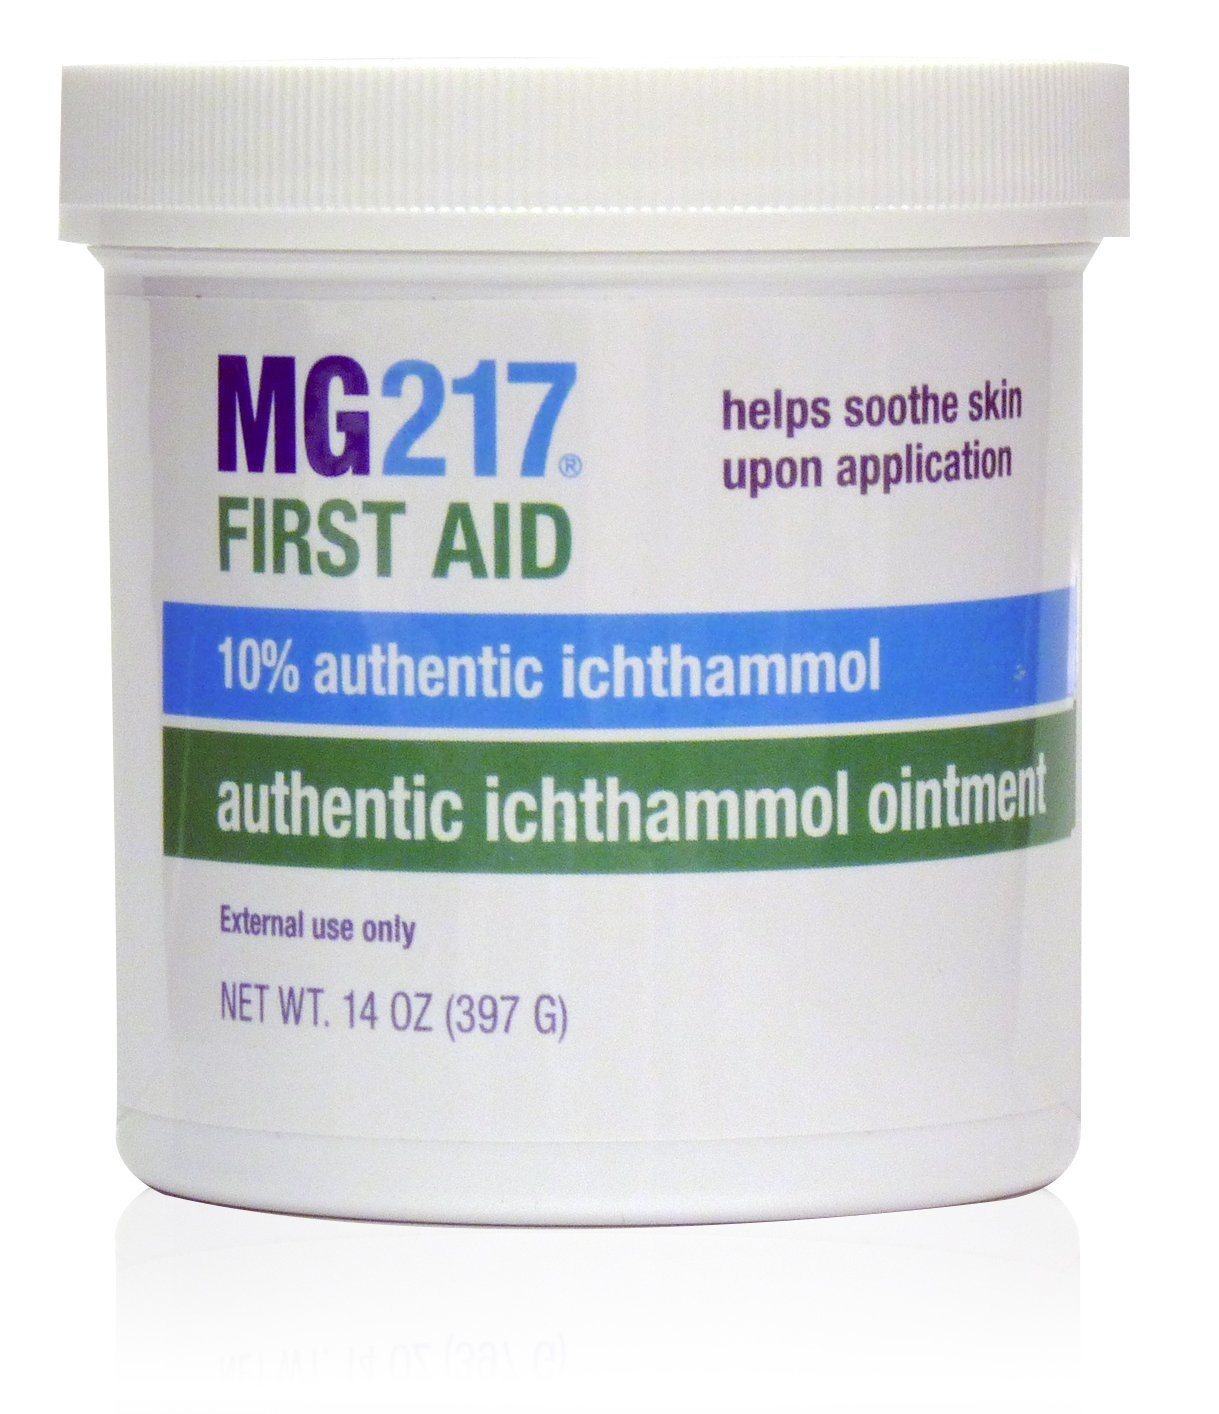 MG217 First Aid Ichthammol Ointment, 410ml